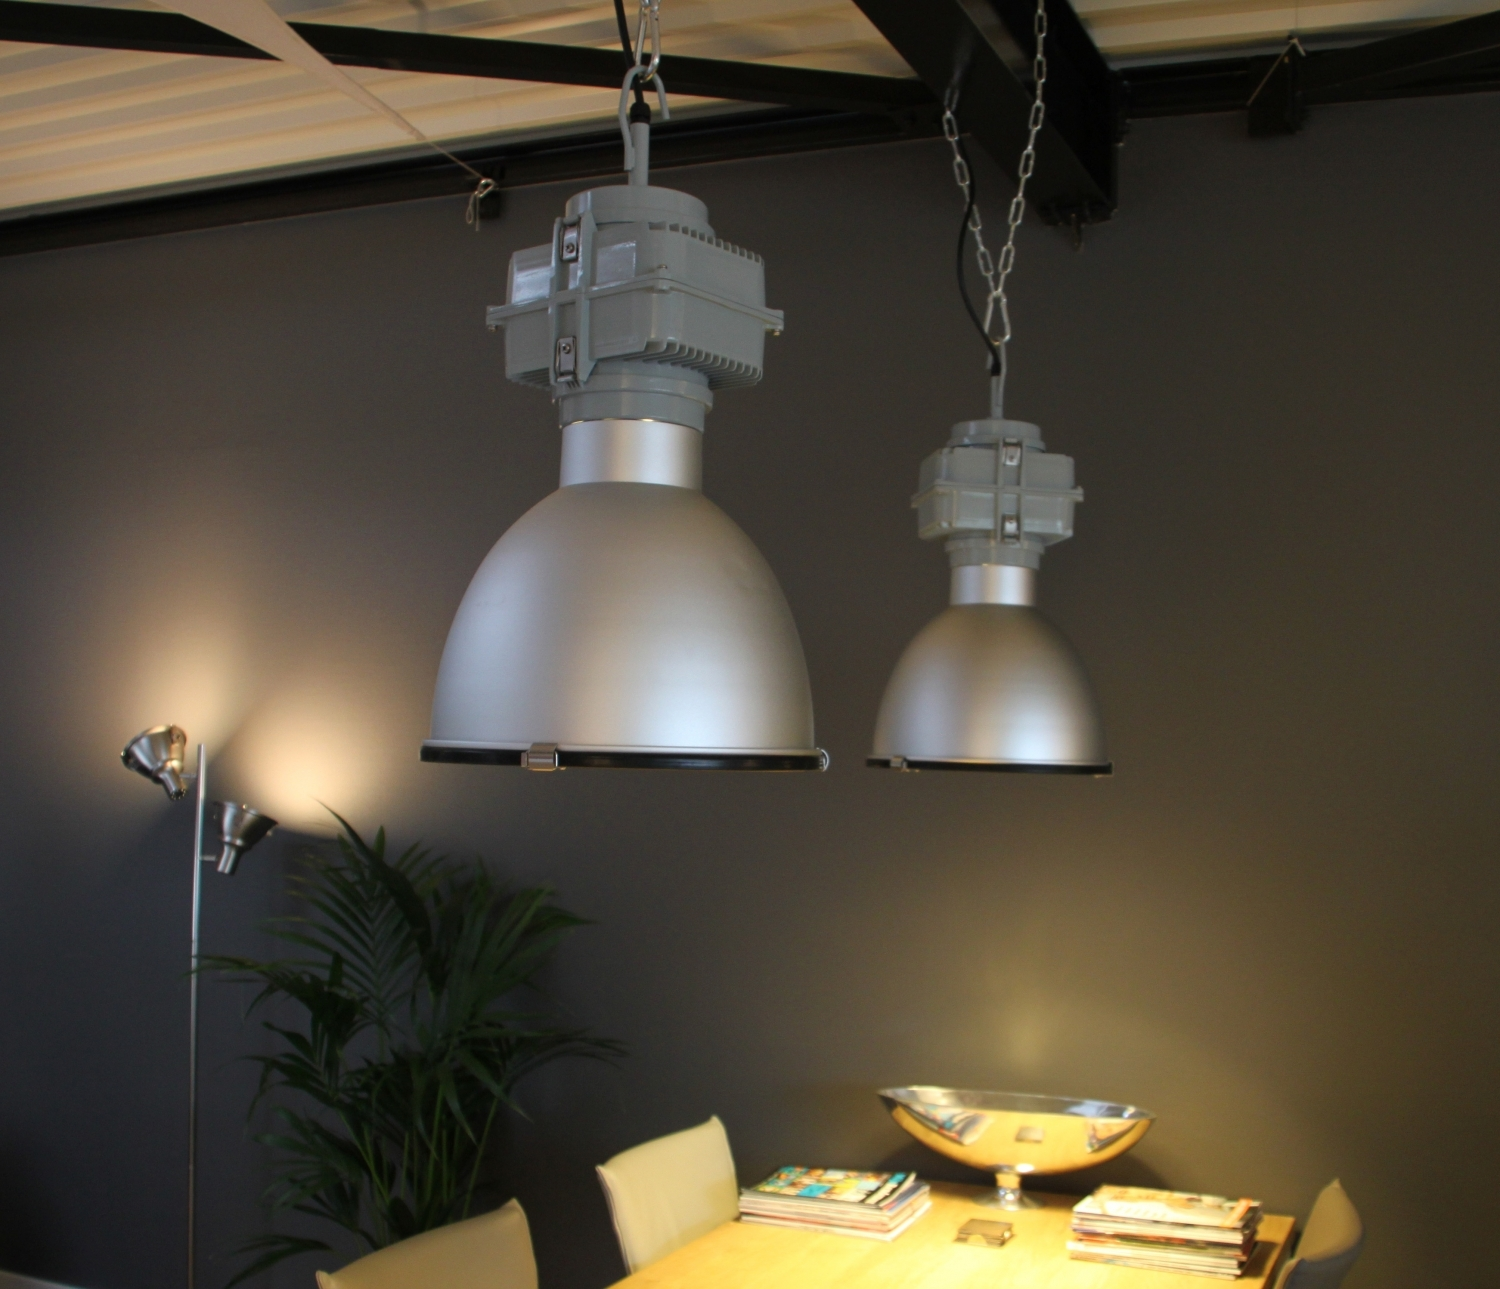 Home industri le hanglamp for Lampen industrie